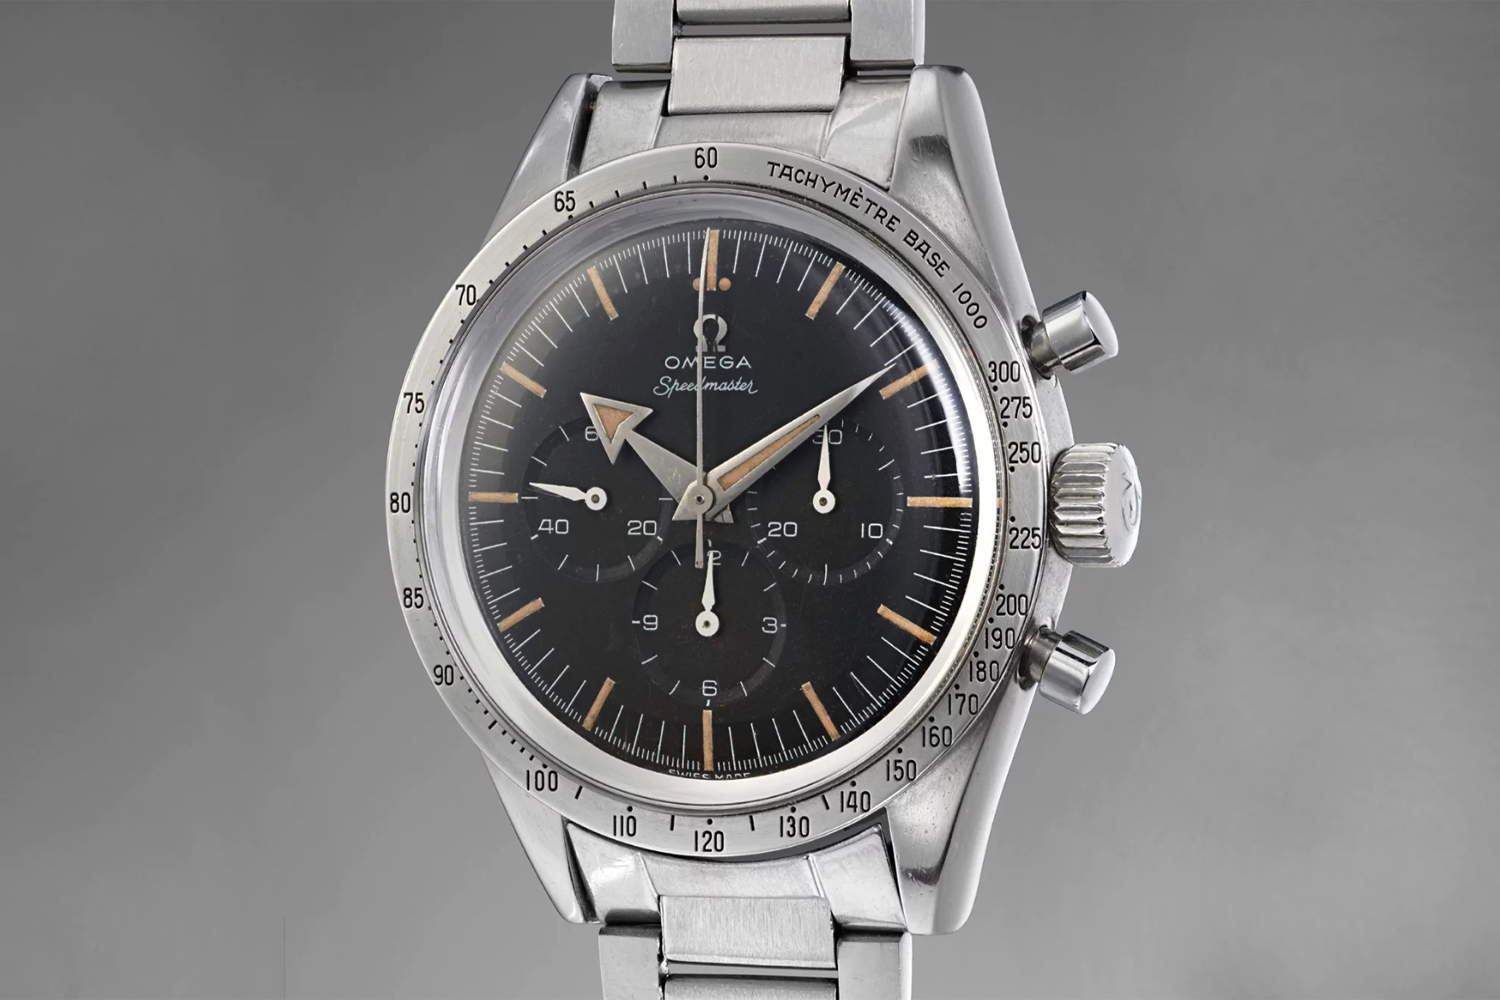 The CK2915-The Omega Speedmaster launched in 1957 was the very first chronograph with the tachymeter featured on the bezel of the watch; it was also one of the first Omega watches to use the Lemania 2310-based calibre 321; the watch seen here is a CK2915-1 sold by Phillips, at their Geneva Watch Auction on 12 May 2018, for CHF408,500 against an estimate of CHF 80,000-140,000 (Image: phillipswatches.com)1 sold by Phillips, at their Geneva Watch Auction on 12 May 2018, for CHF408,500 against an estimate of CHF 80,000-140,000 (Image: phillipswatches.com)